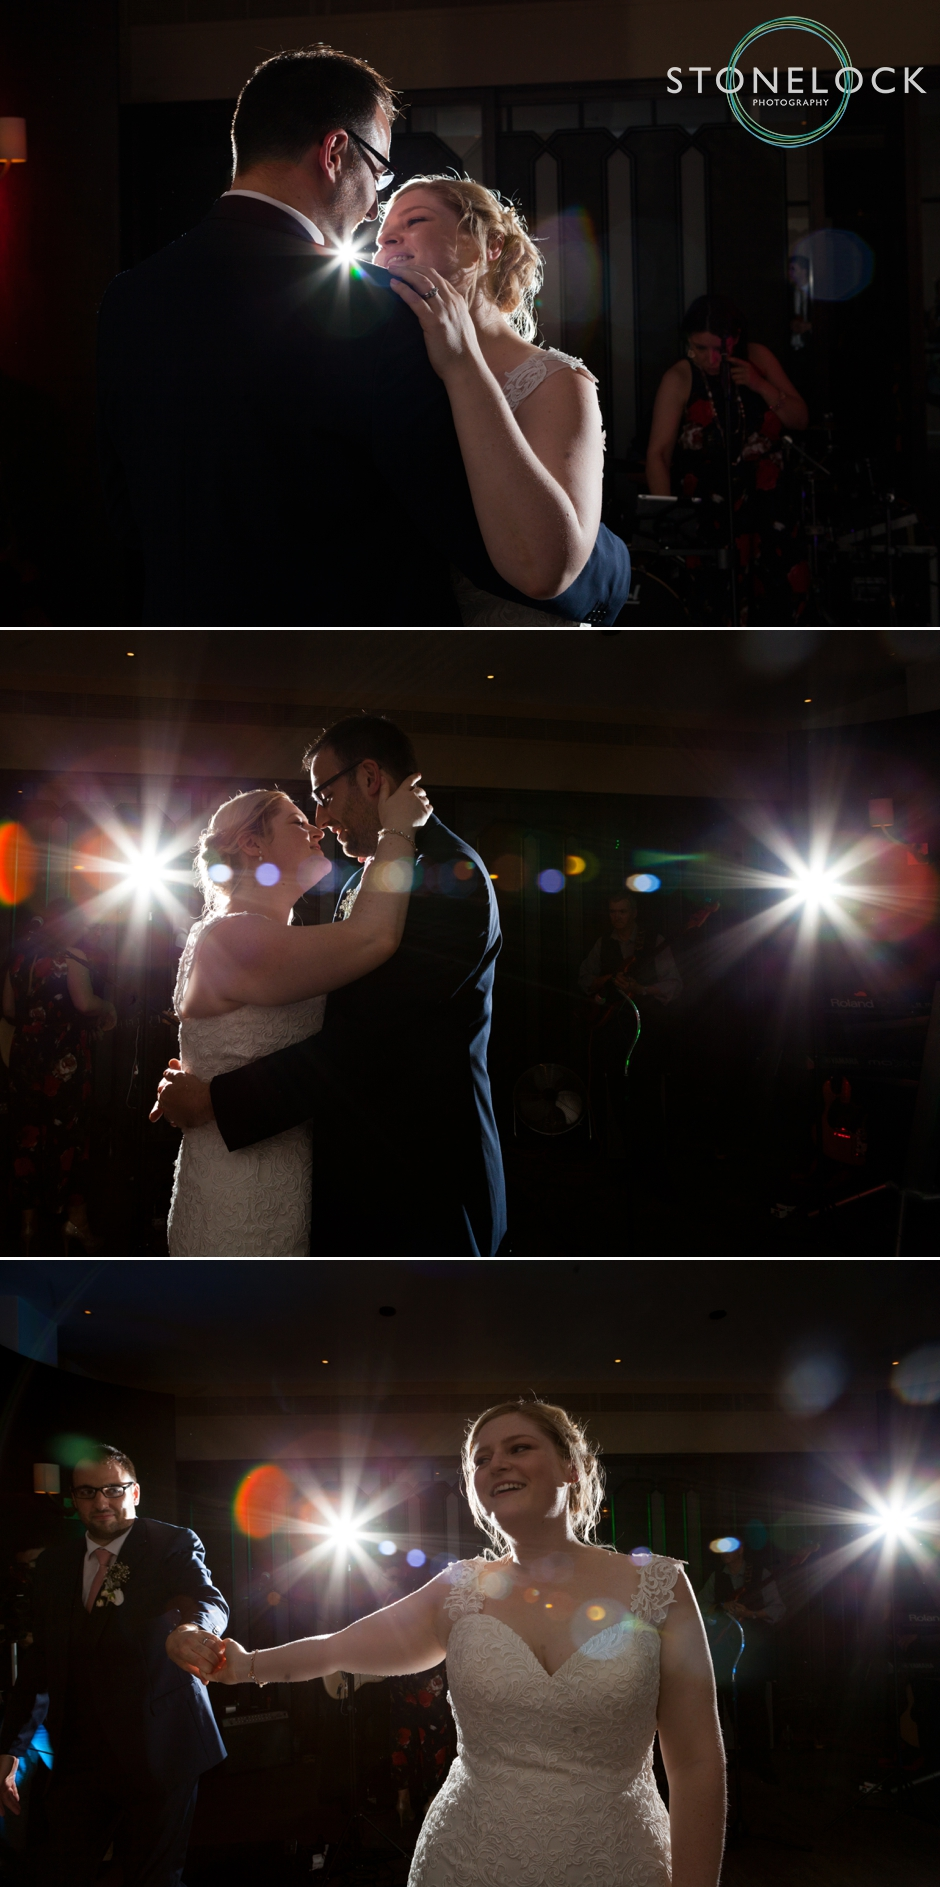 The bride & groom's first dance at their wedding reception at Devonshire Square in Bishopsgate, London